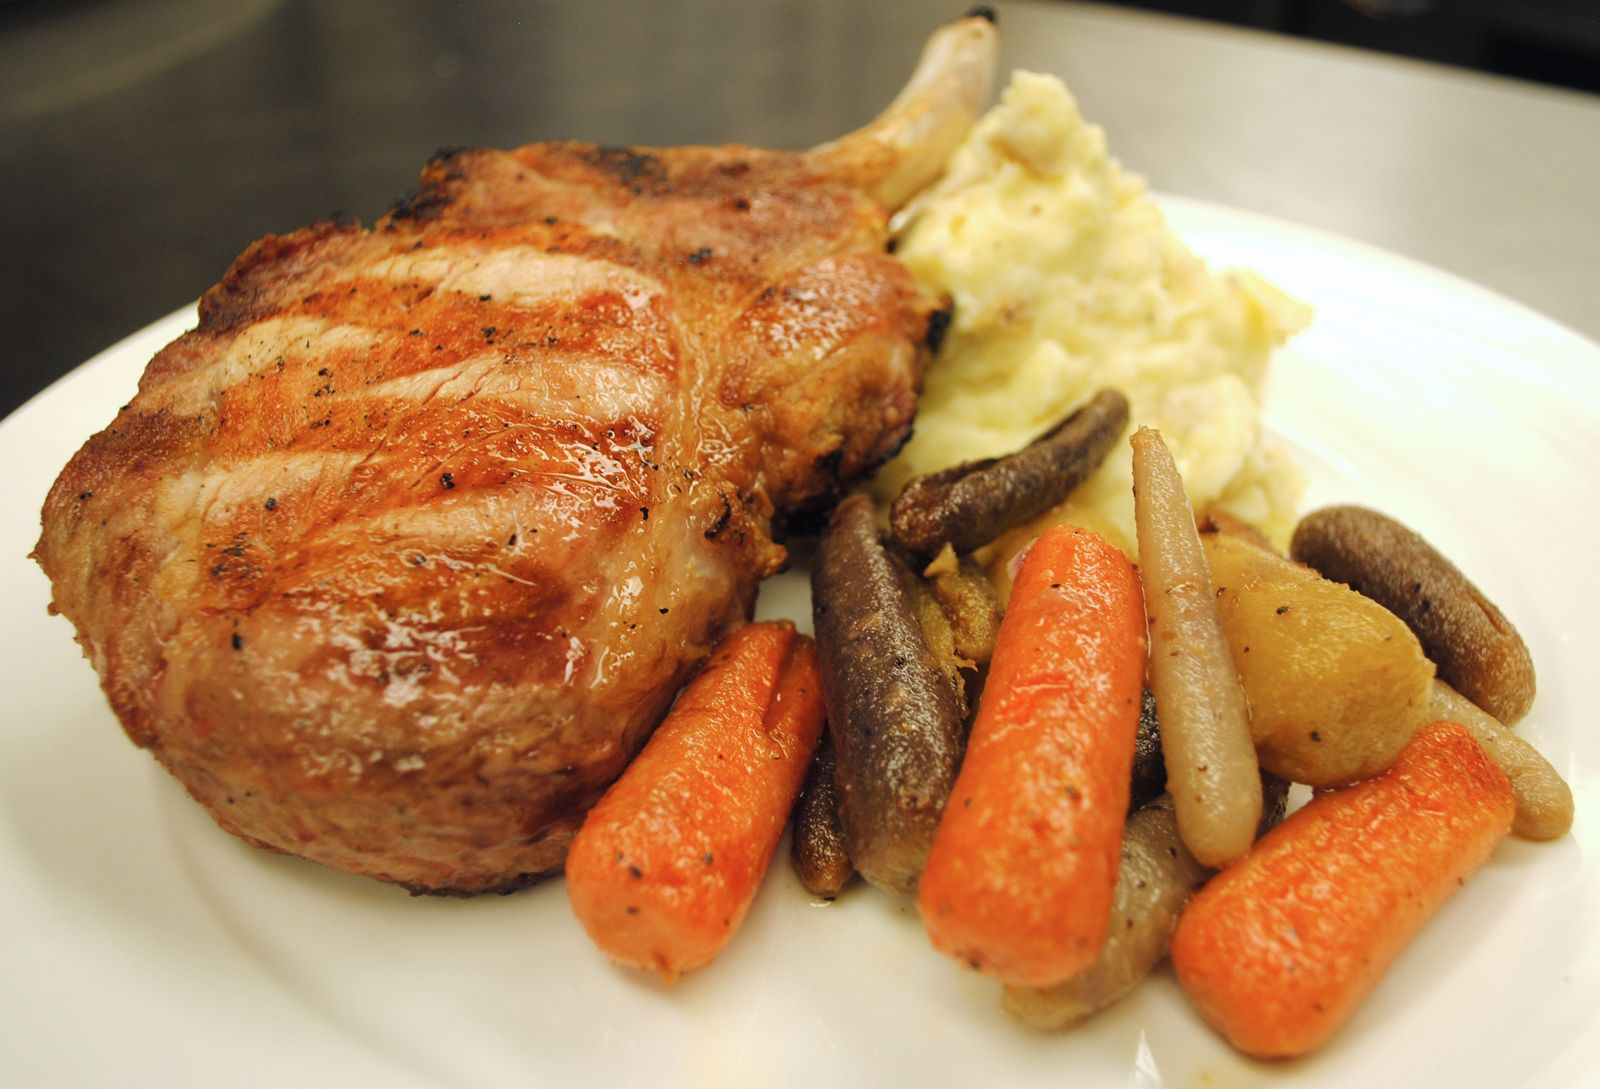 Double Cut Pork Chop with garlic mashed potatoes, baby carrots, and natural pan jus.